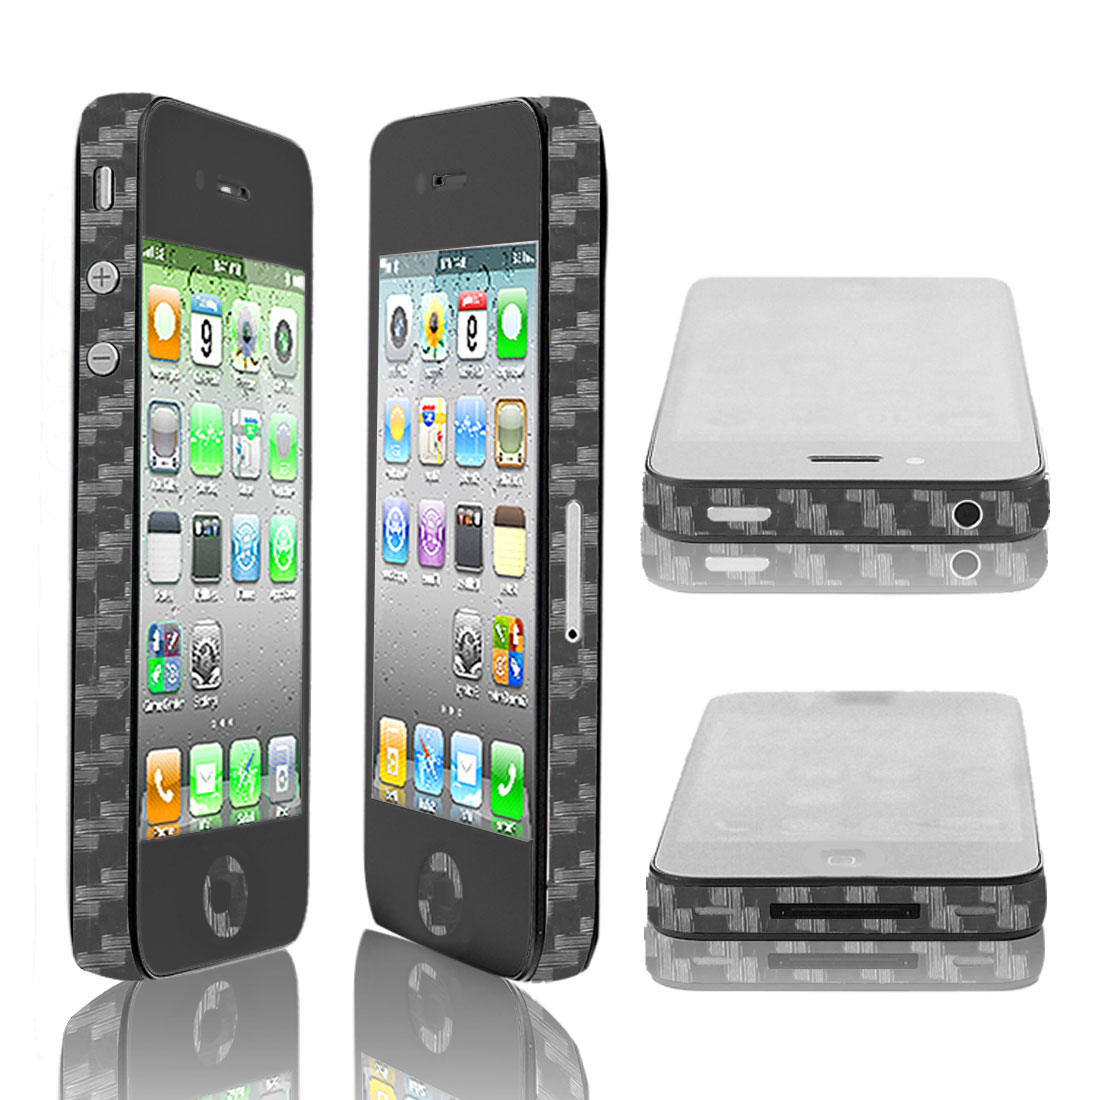 Clear Vinyl Frame Edge Wrap Sticker Decal Decor for Apple iPhone 4 4S 4G 4GS